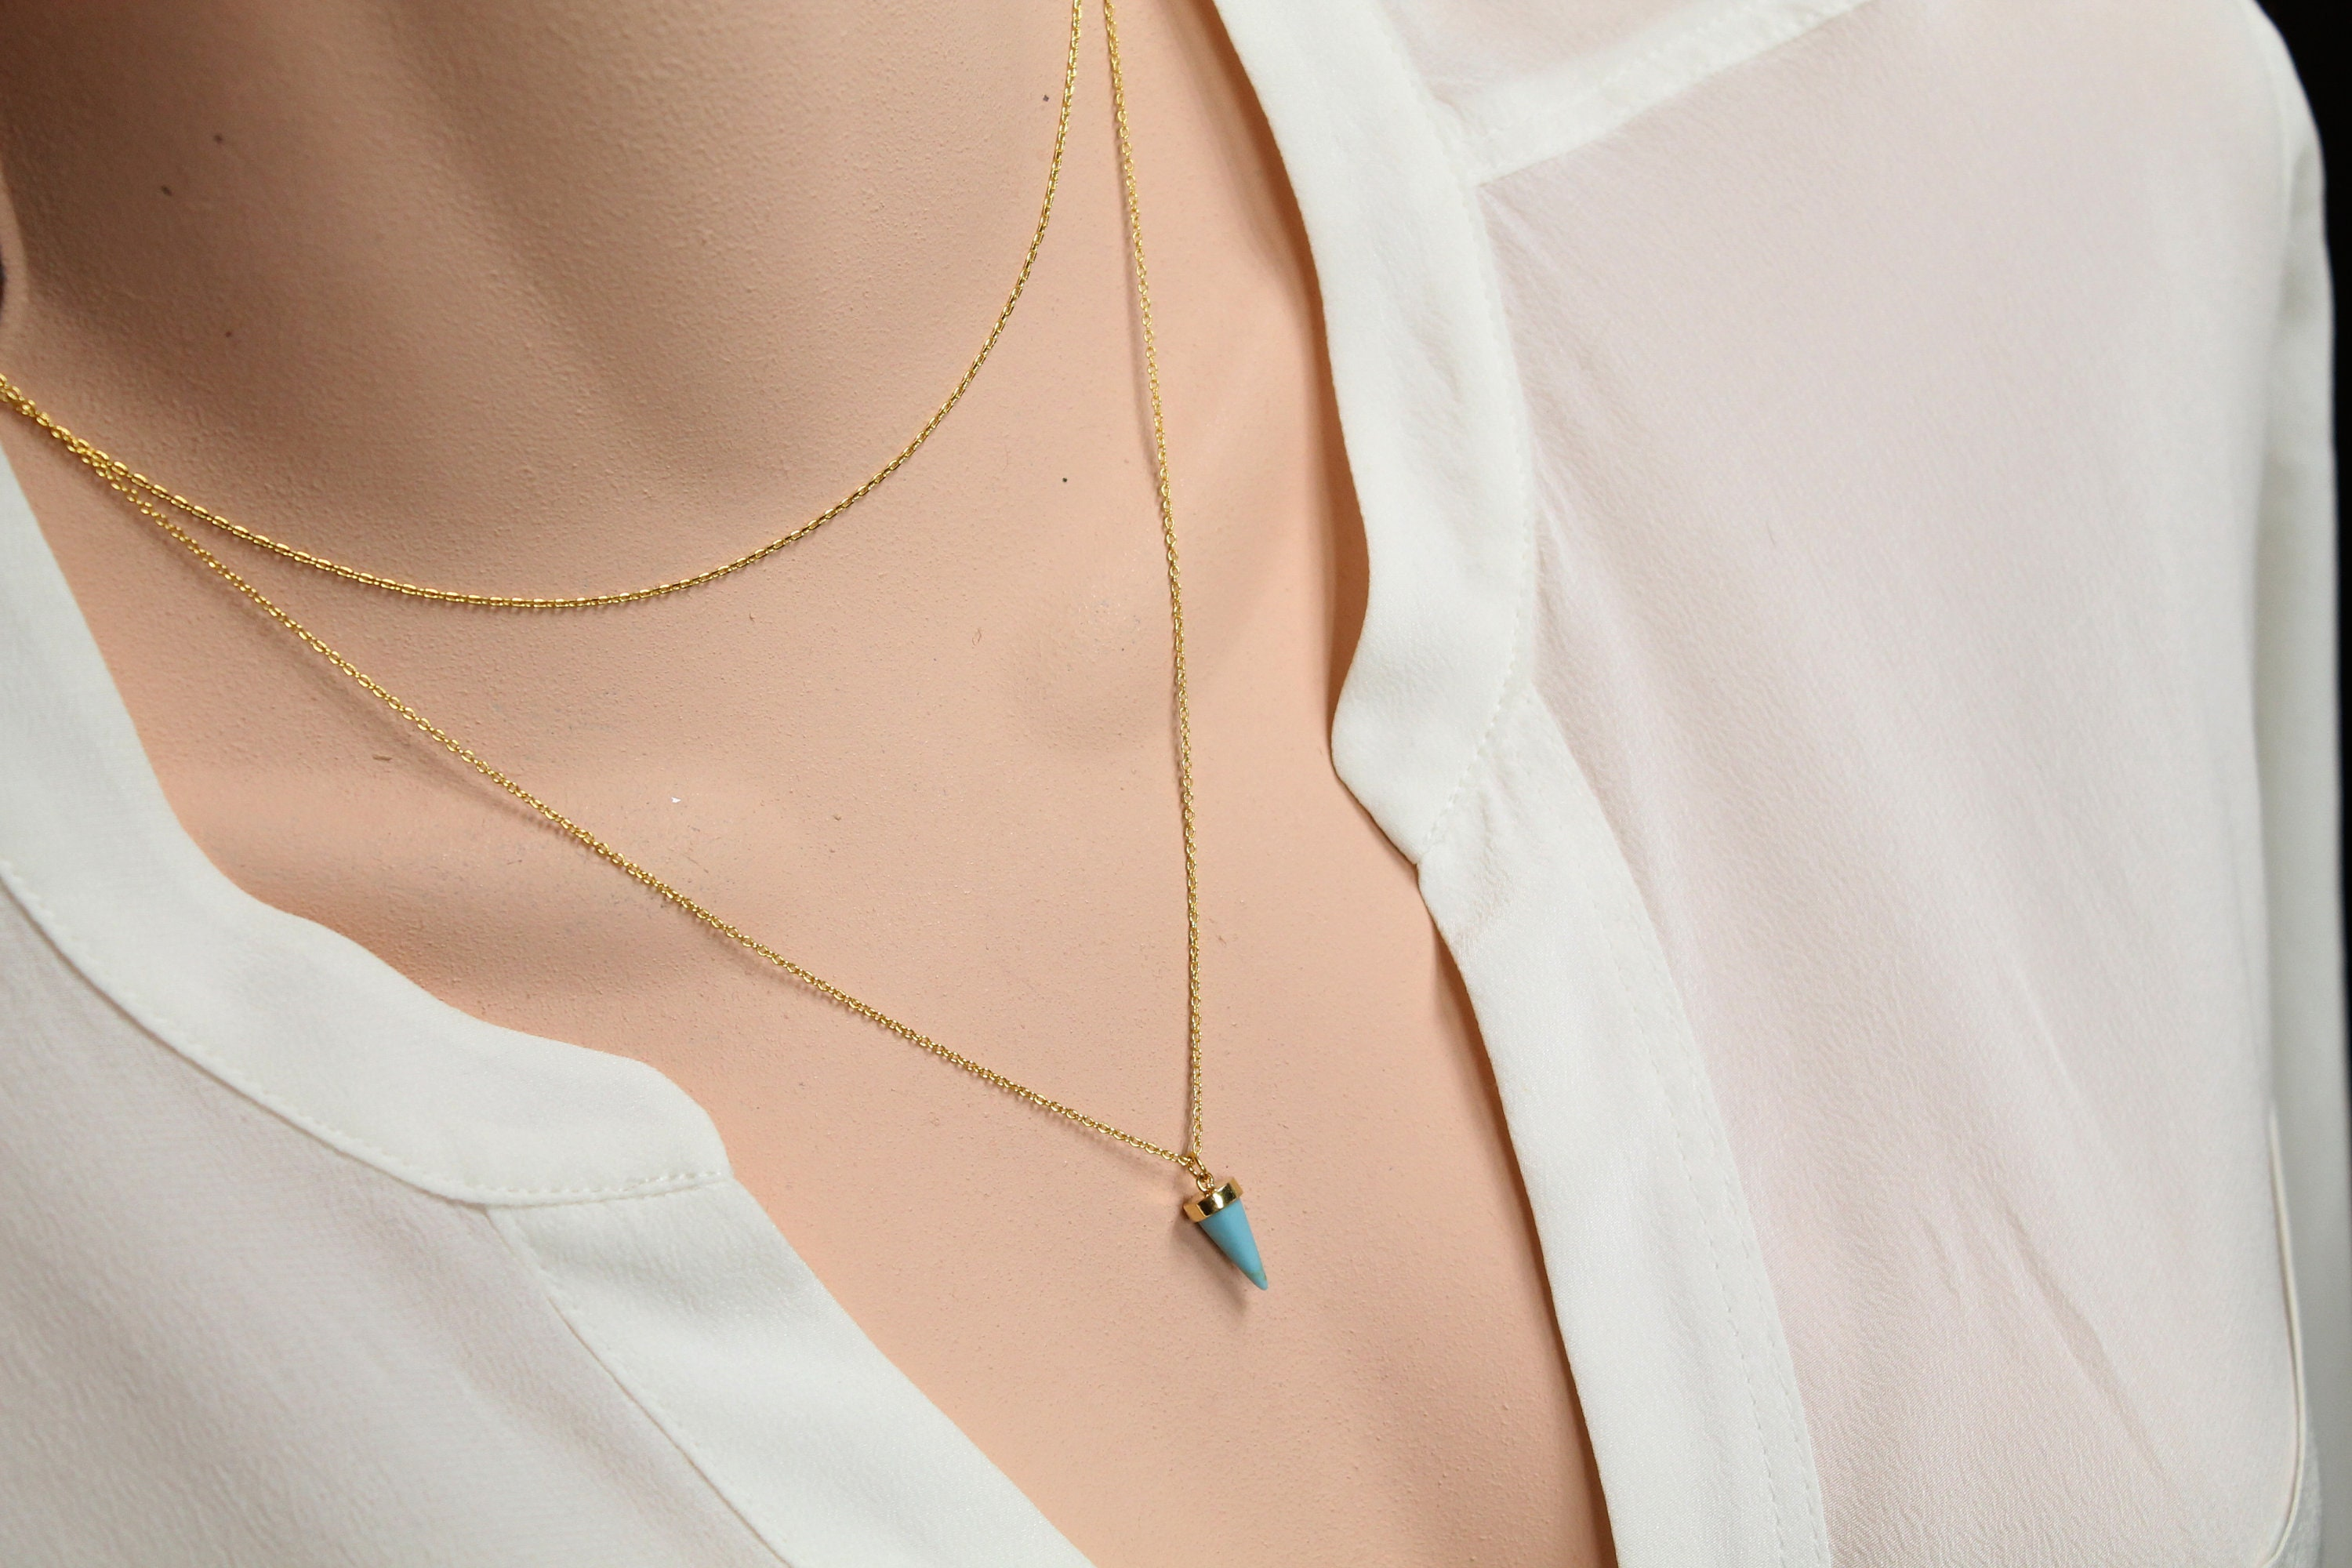 Jewels Obsession Swimmer Necklace 14K Rose Gold-plated 925 Silver Swimmer Pendant with 16 Necklace